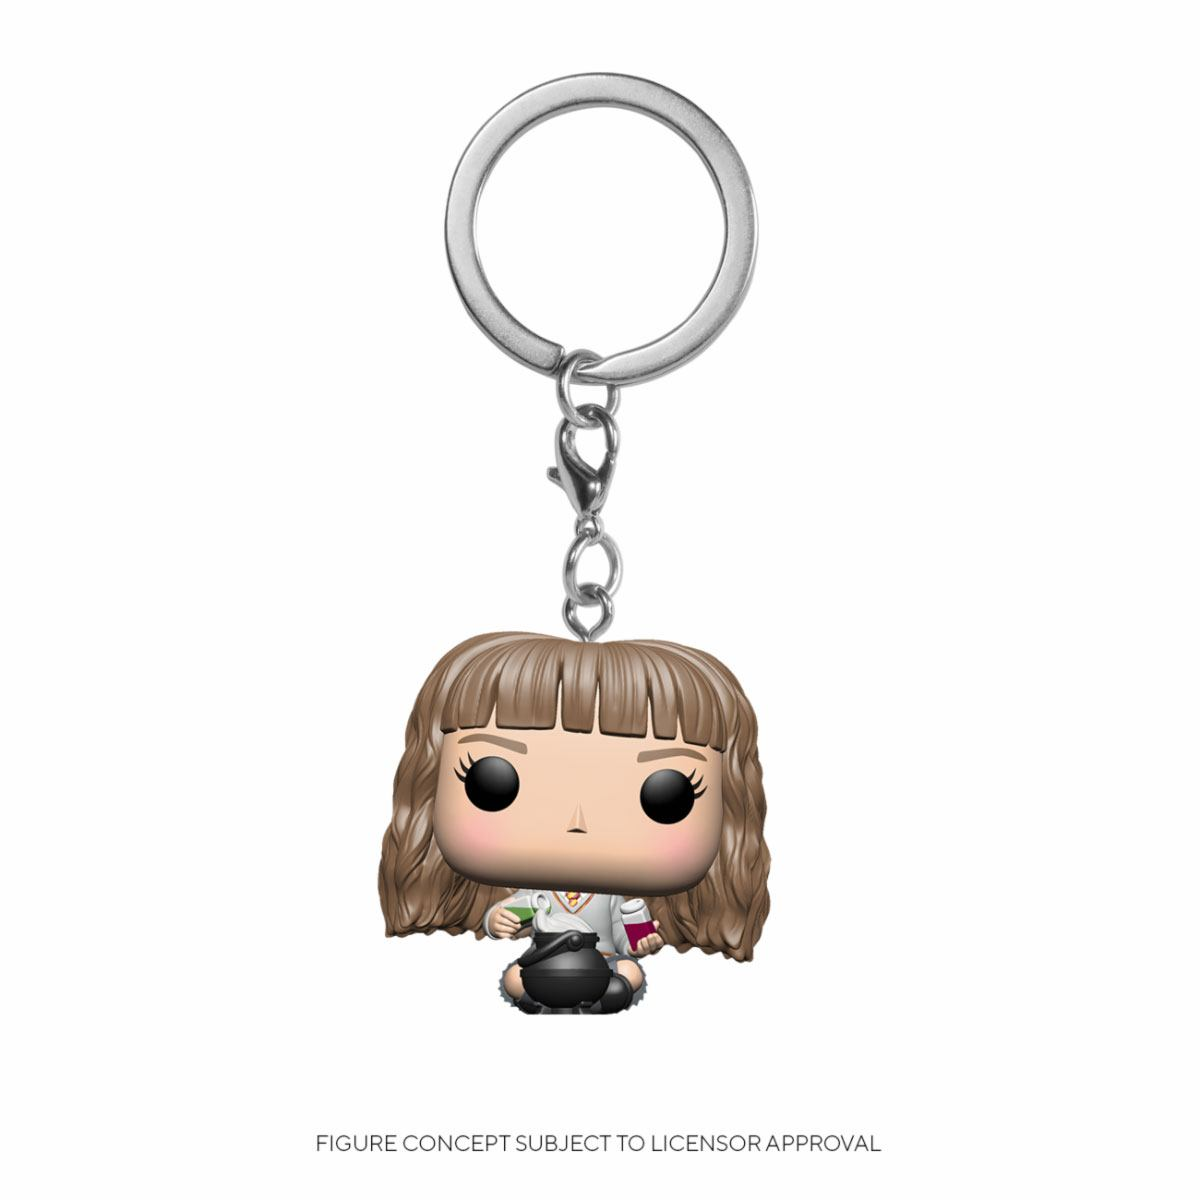 POCKET POP! KEYCHAIN HARRY POTTER HERMIONE GRANGER W/ POTIONS